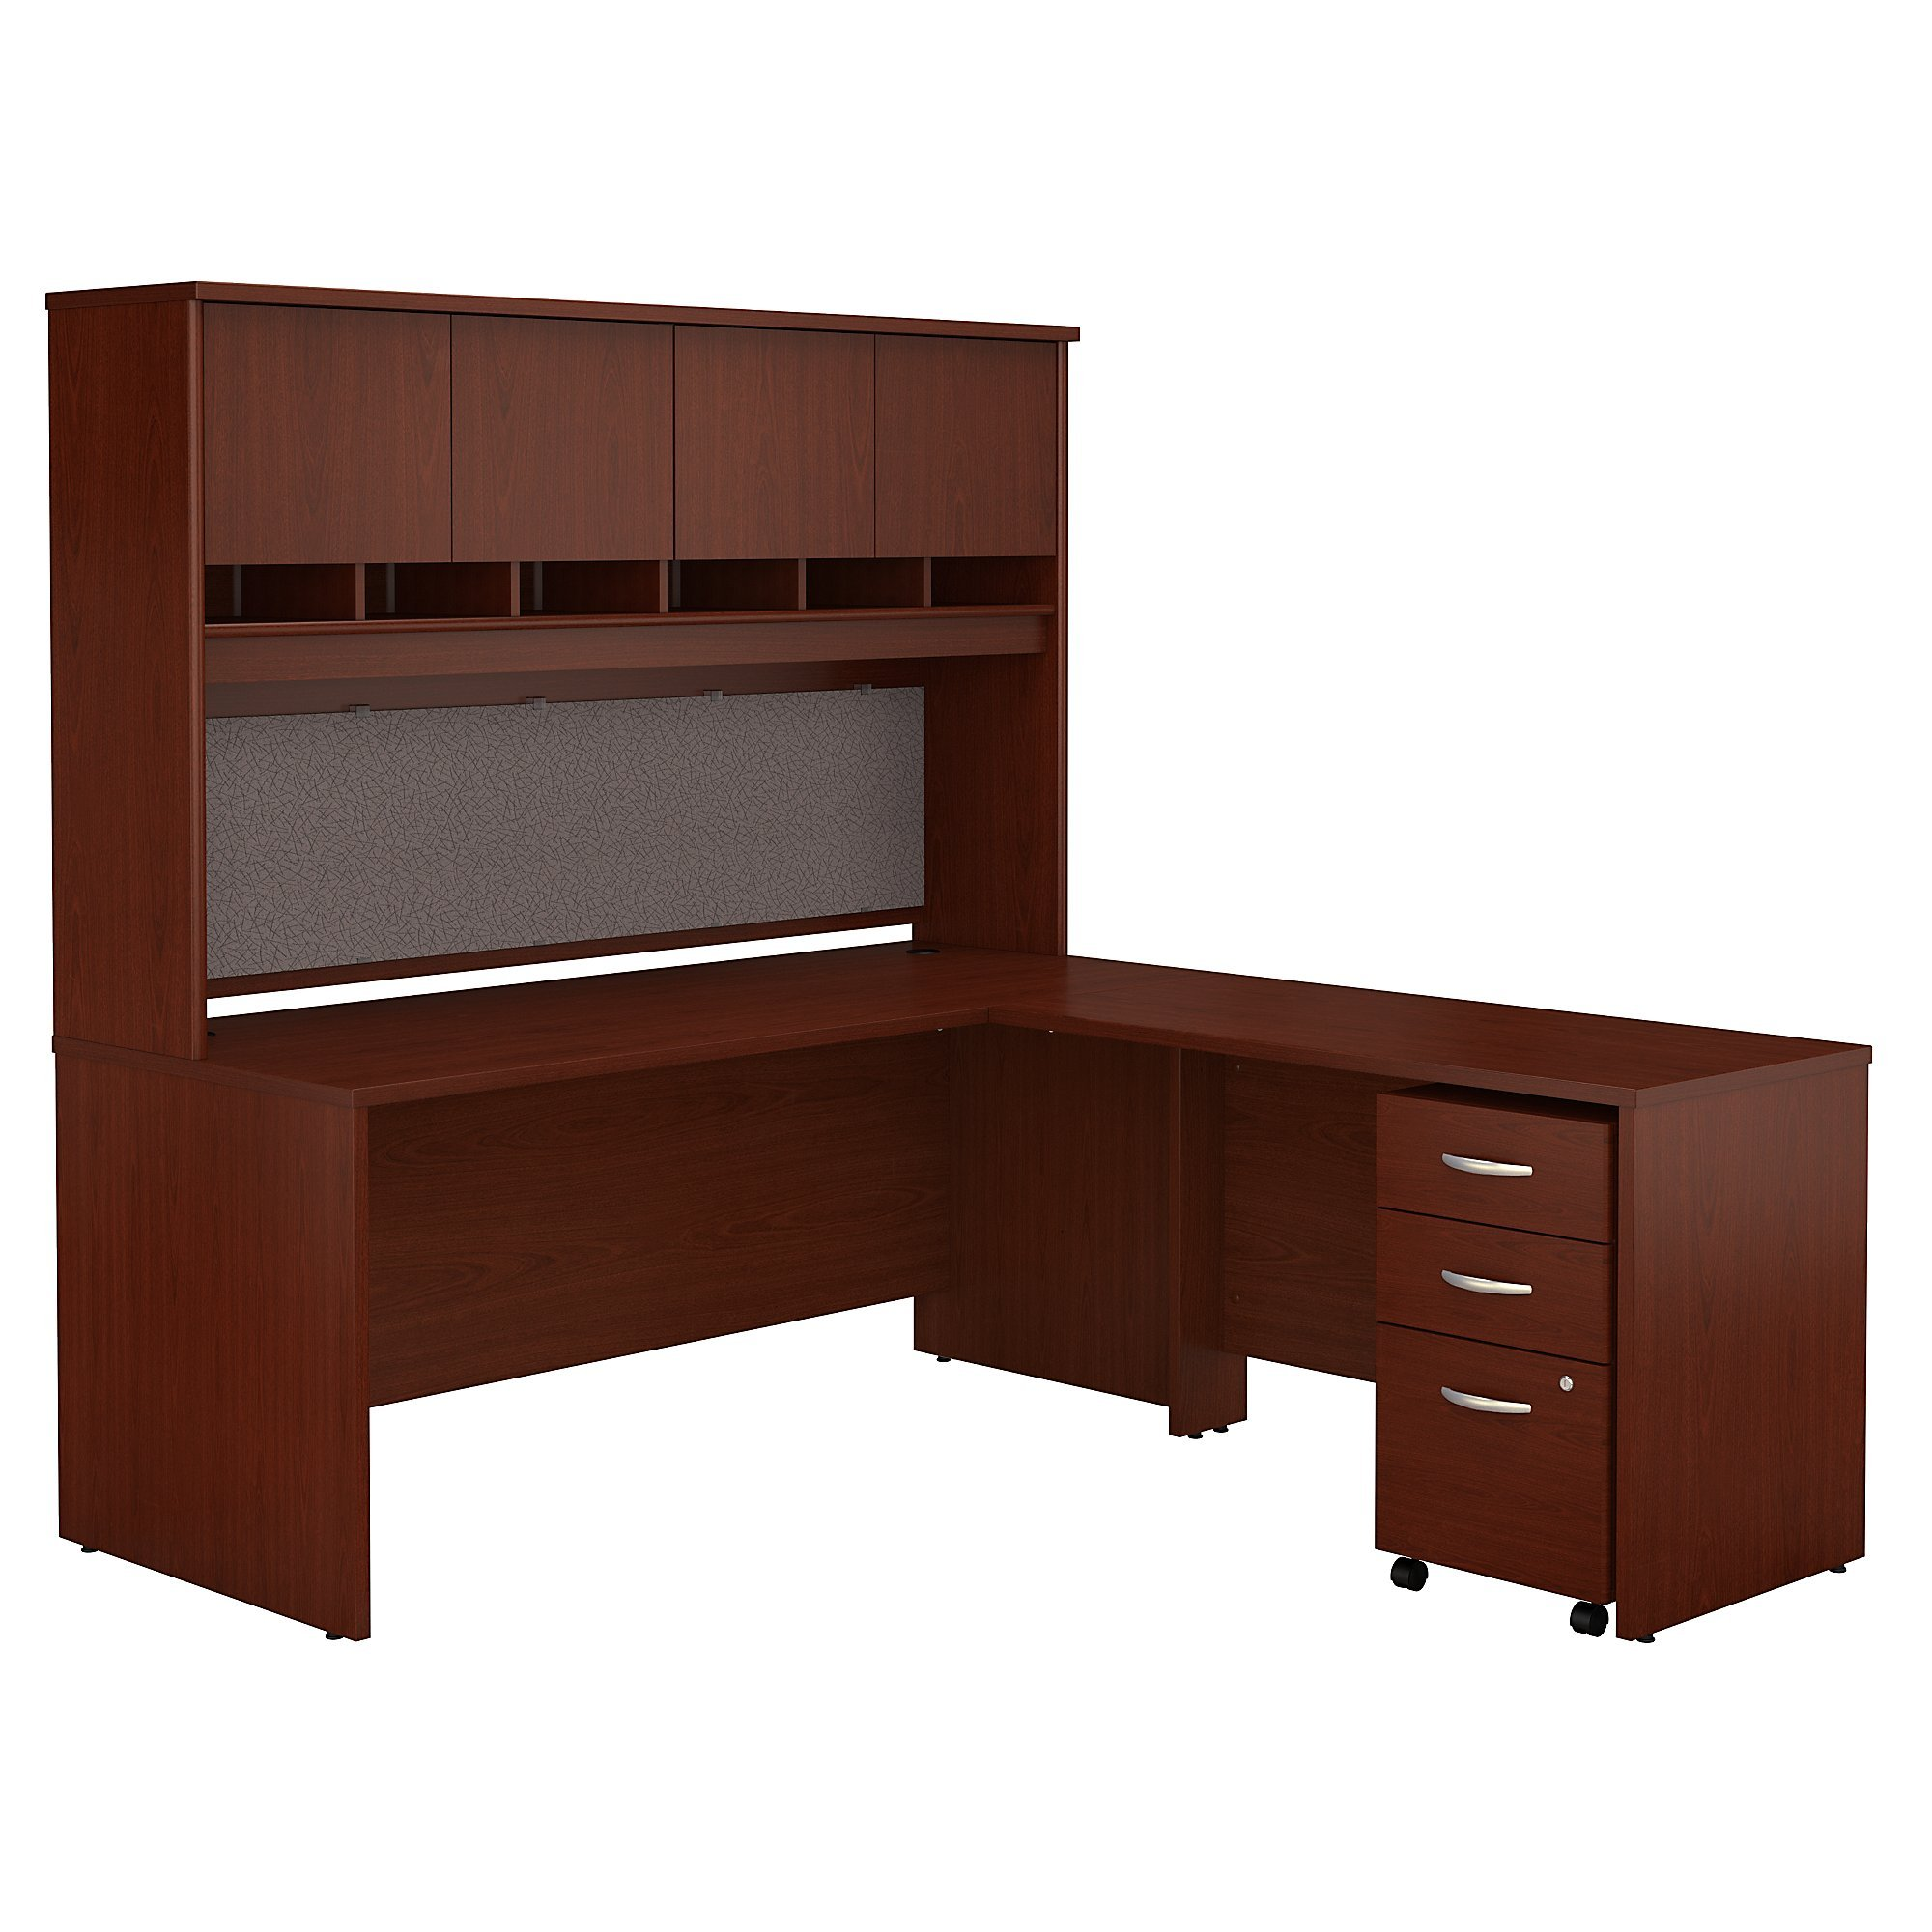 Bush Business Furniture Series C 72W L Shaped Desk with Hutch and Mobile File Cabinet in Mahogany